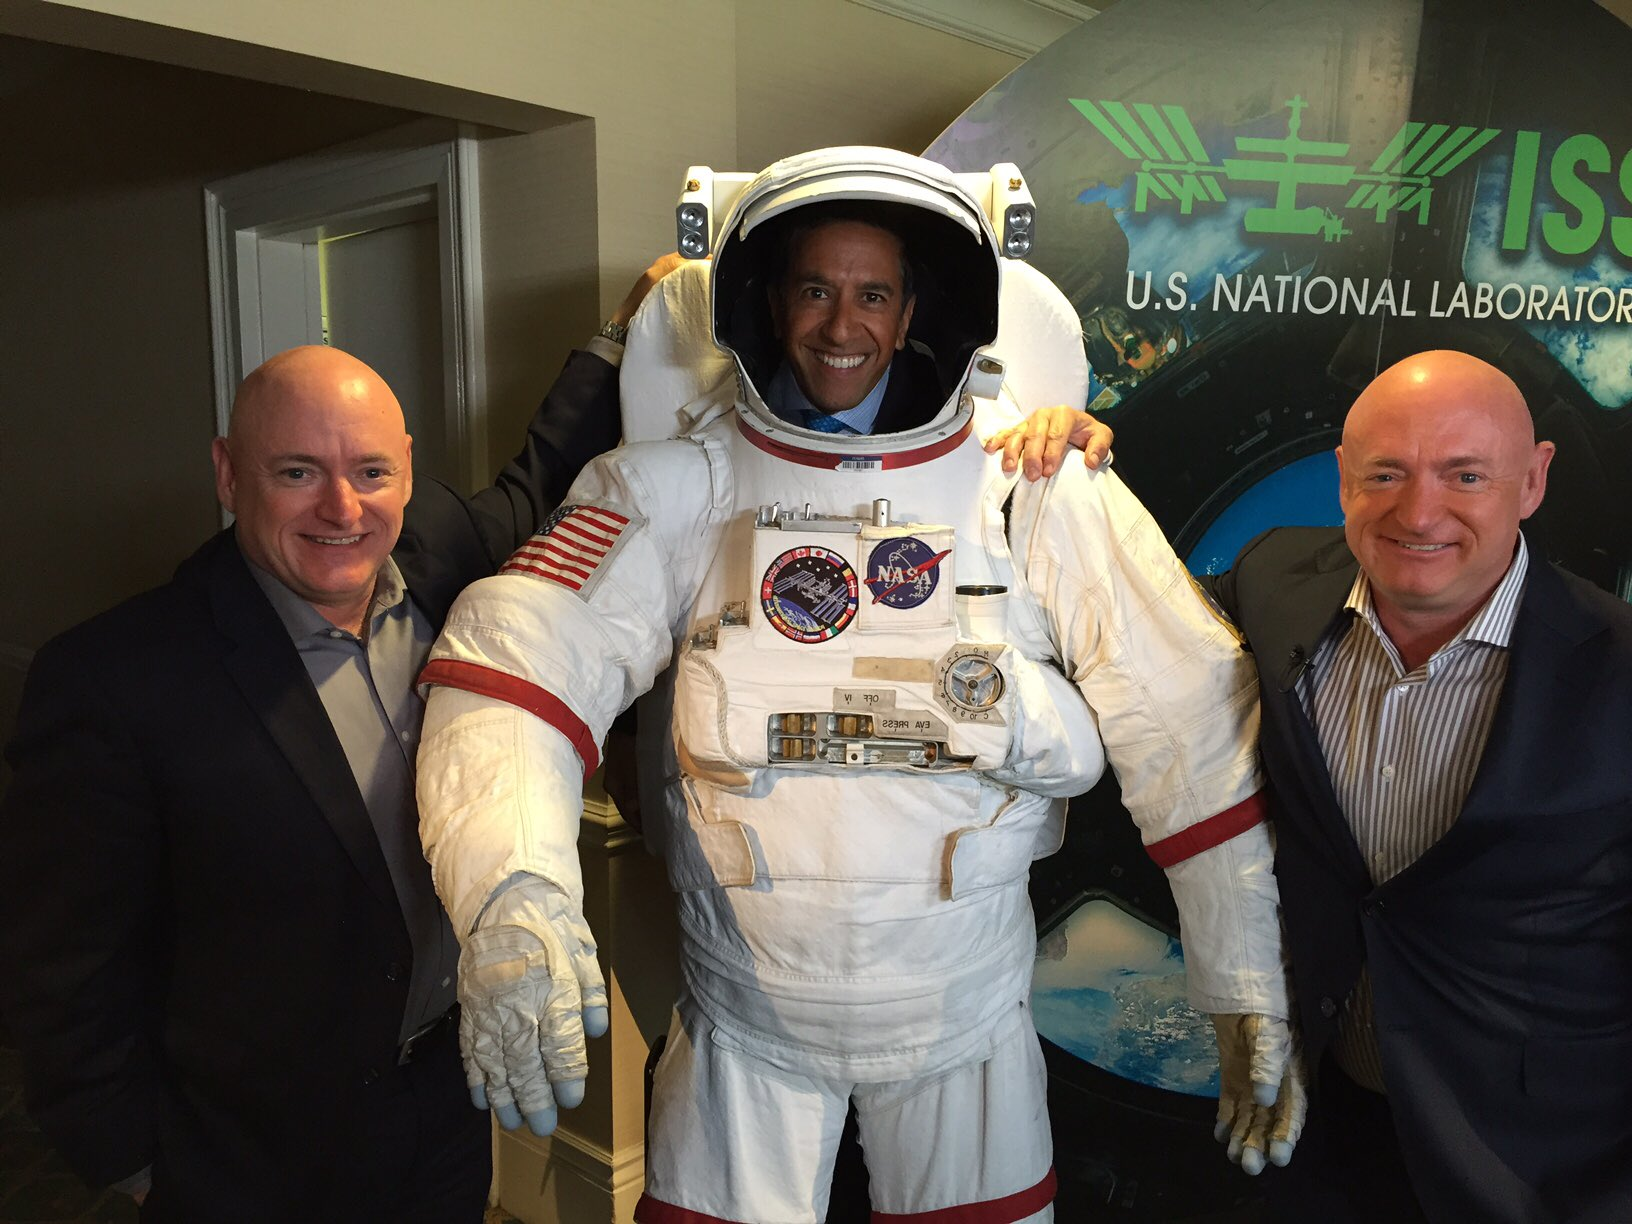 Scott Kelly, Mark Kelly and Sanjay Gupta